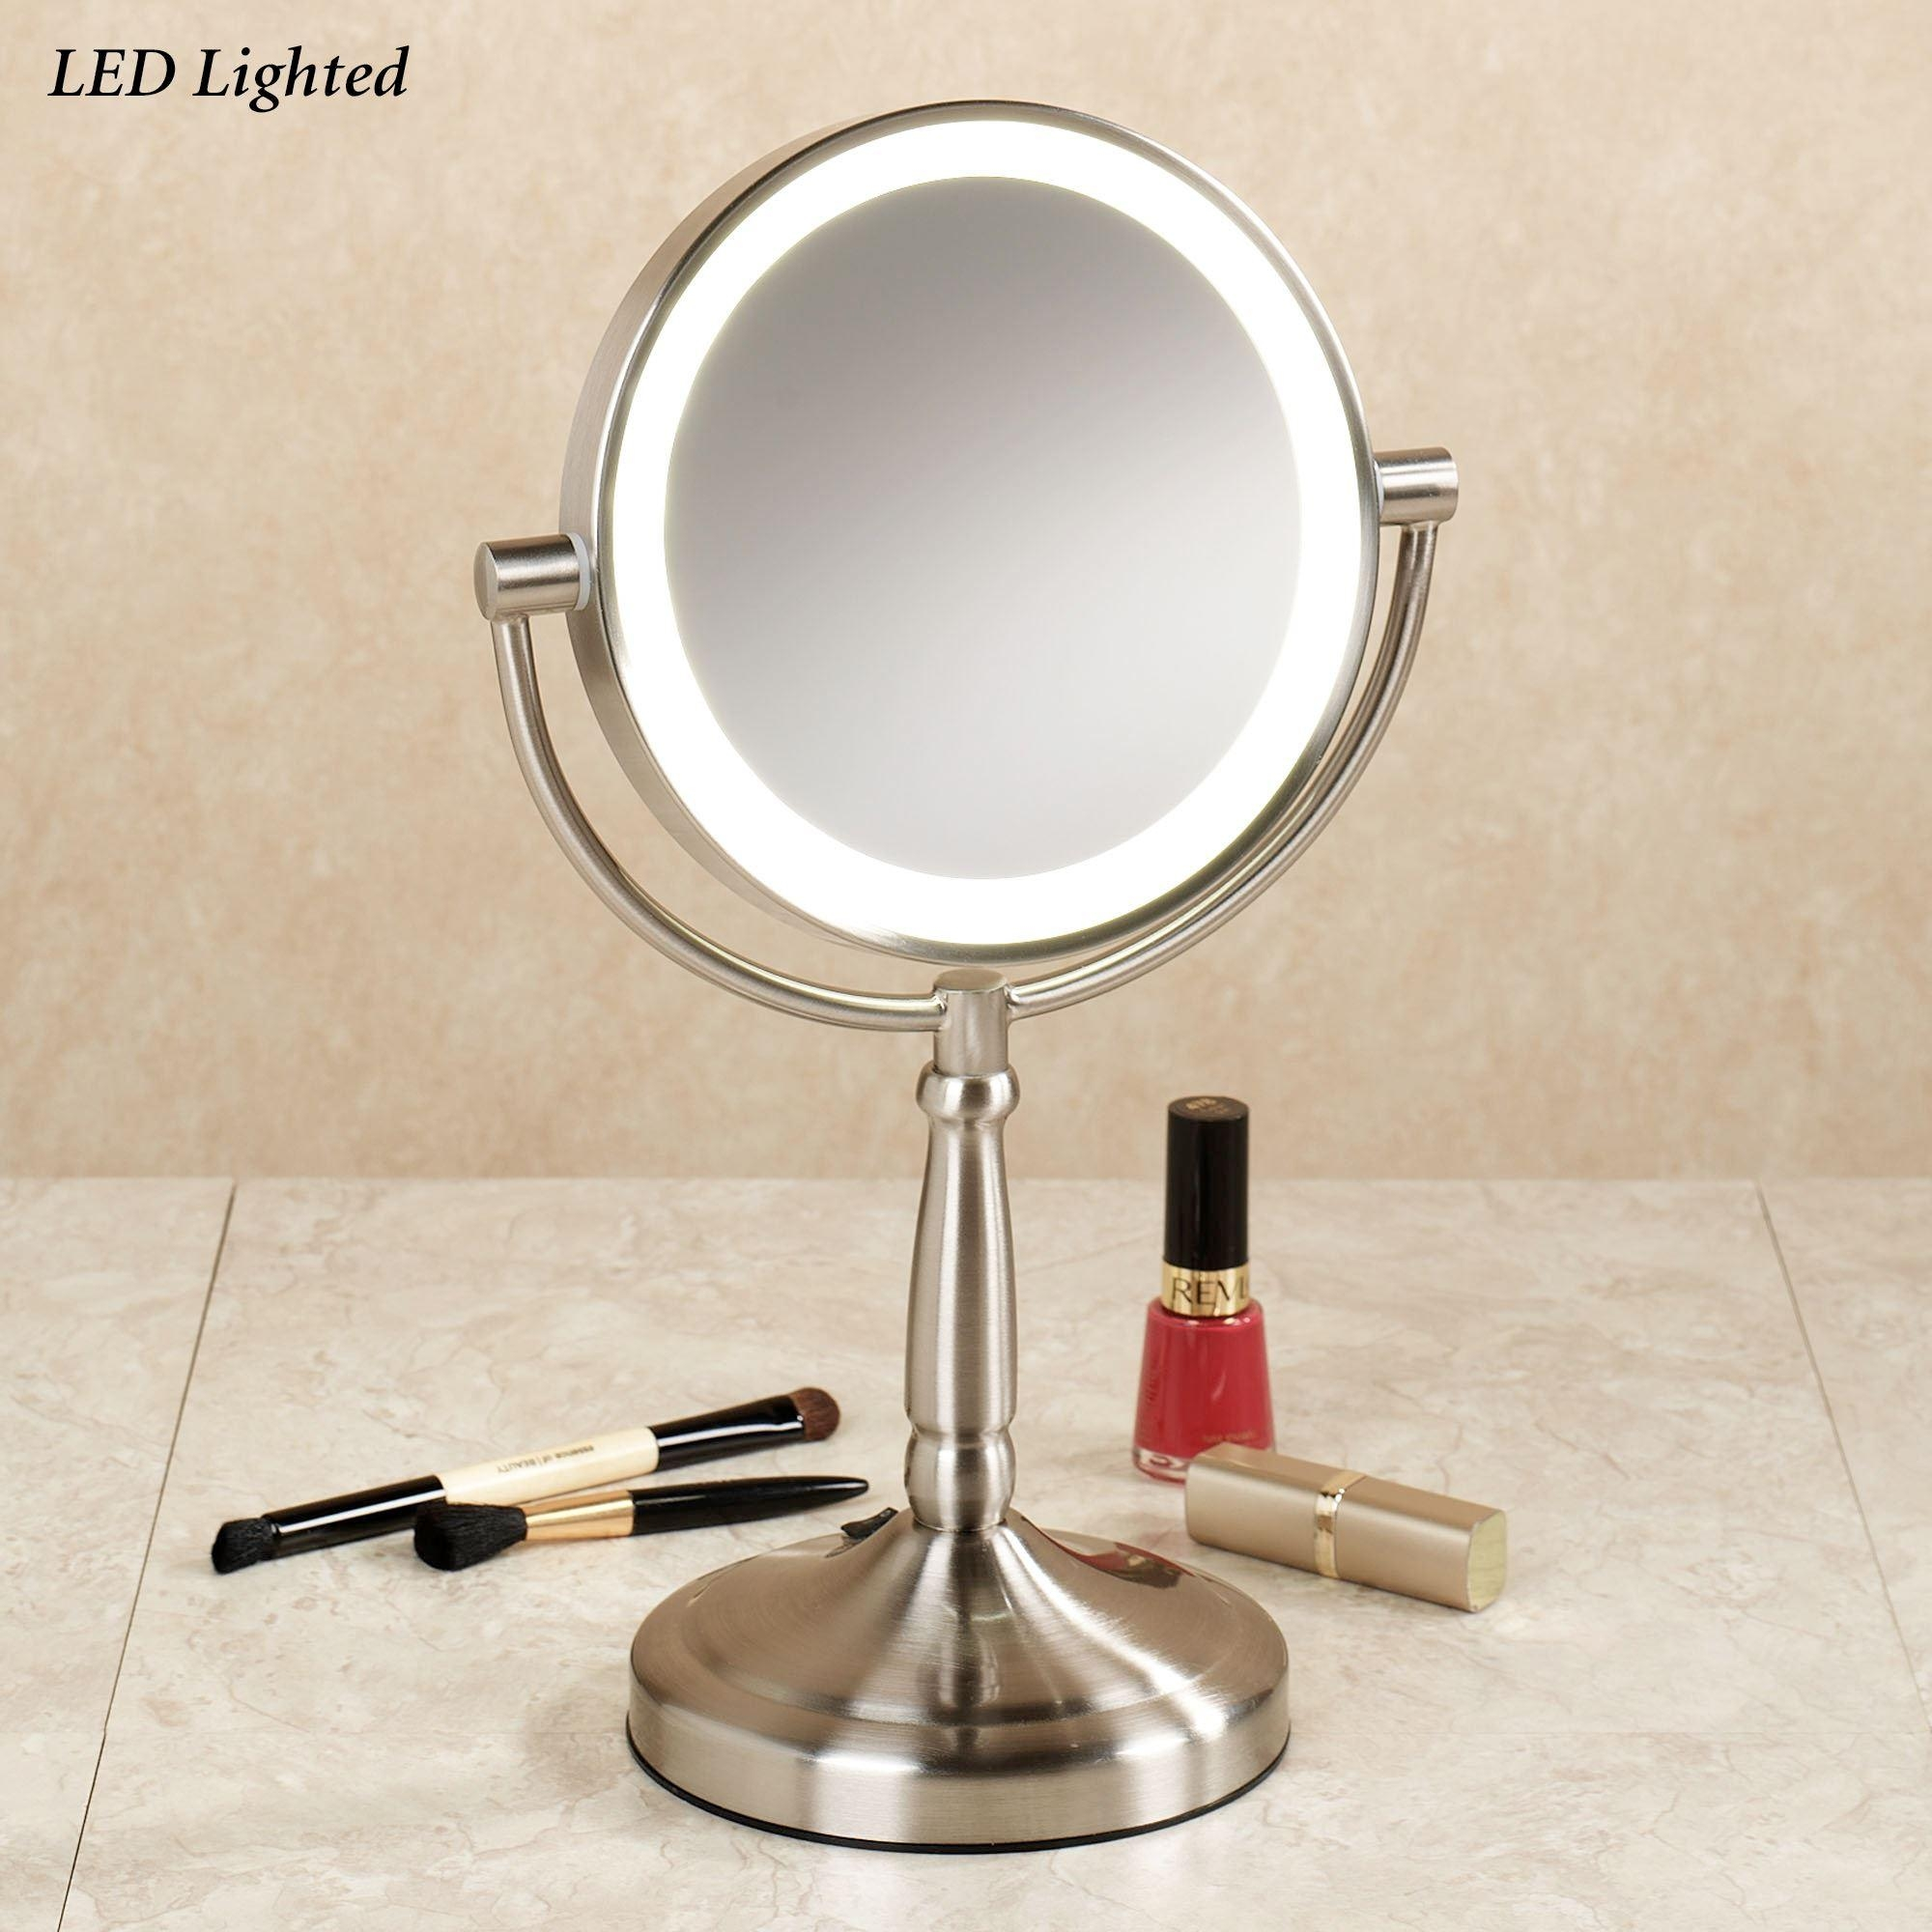 Cordless Led Lighted 10X Magnifying Vanity Mirror Pertaining To Magnified Vanity Mirrors (Image 7 of 20)